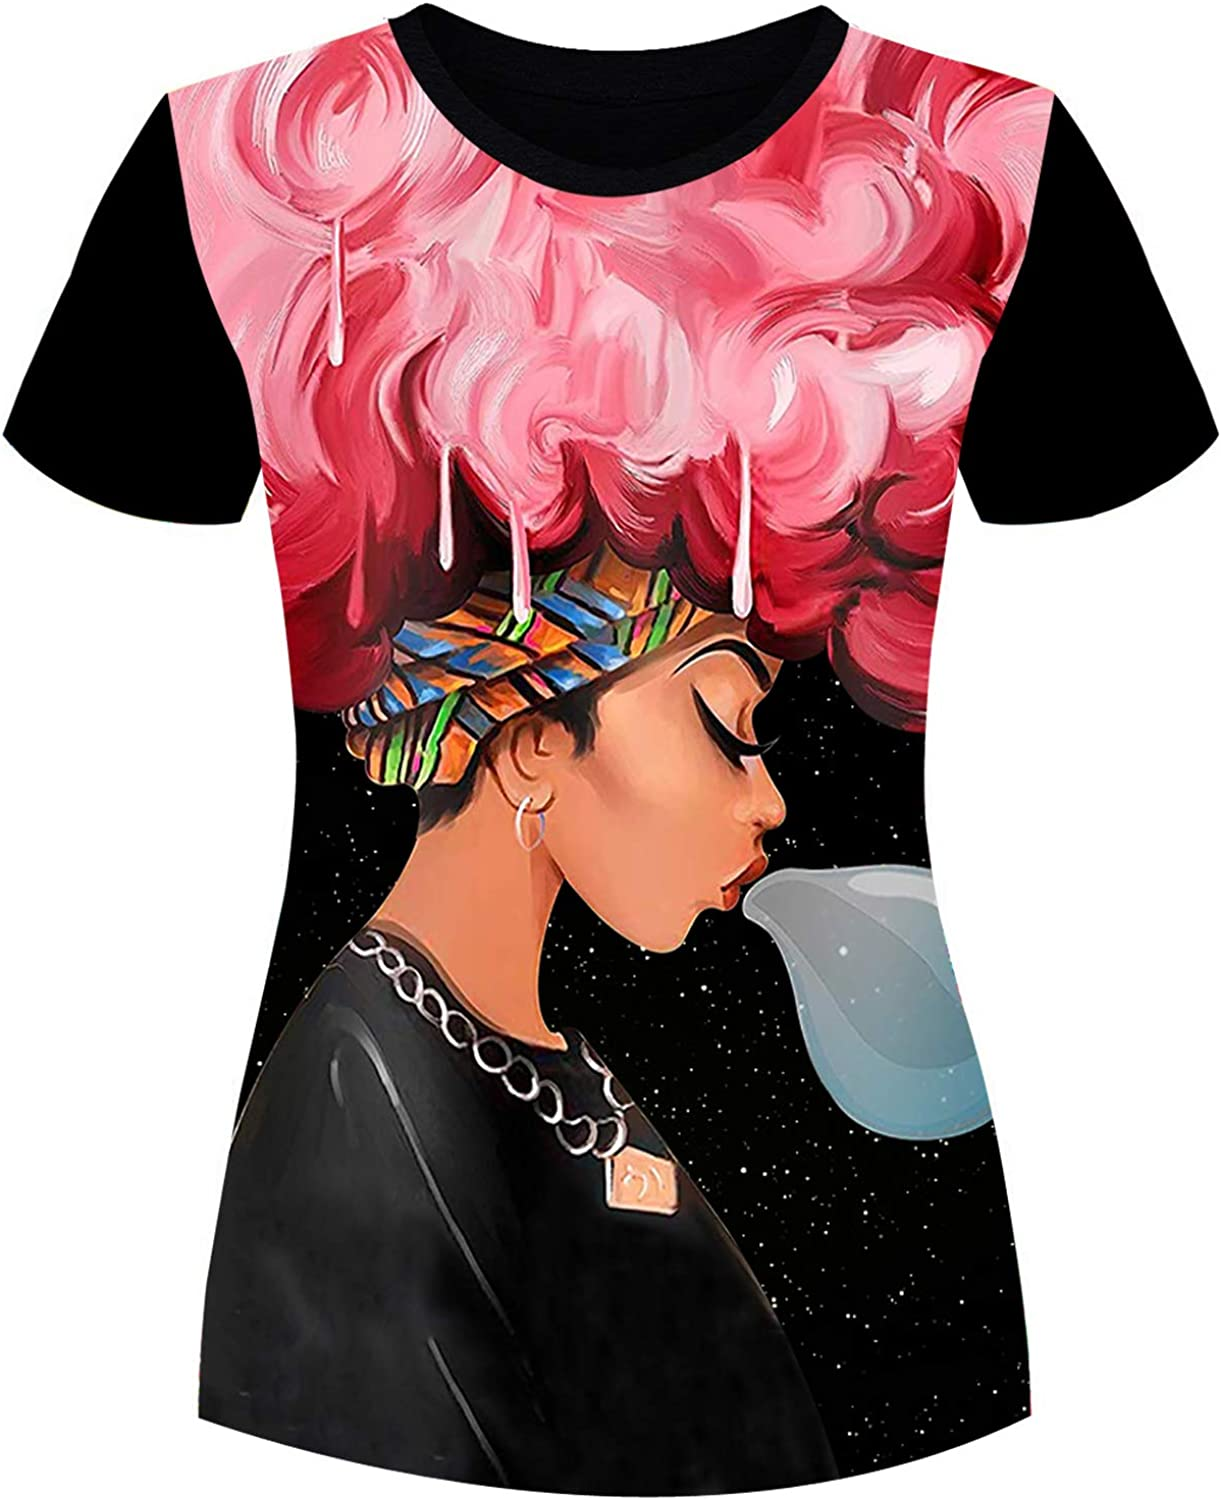 AZPSRT Women's T-Shirts All items free shipping Black History Word Art Month Natura Afro Over item handling ☆